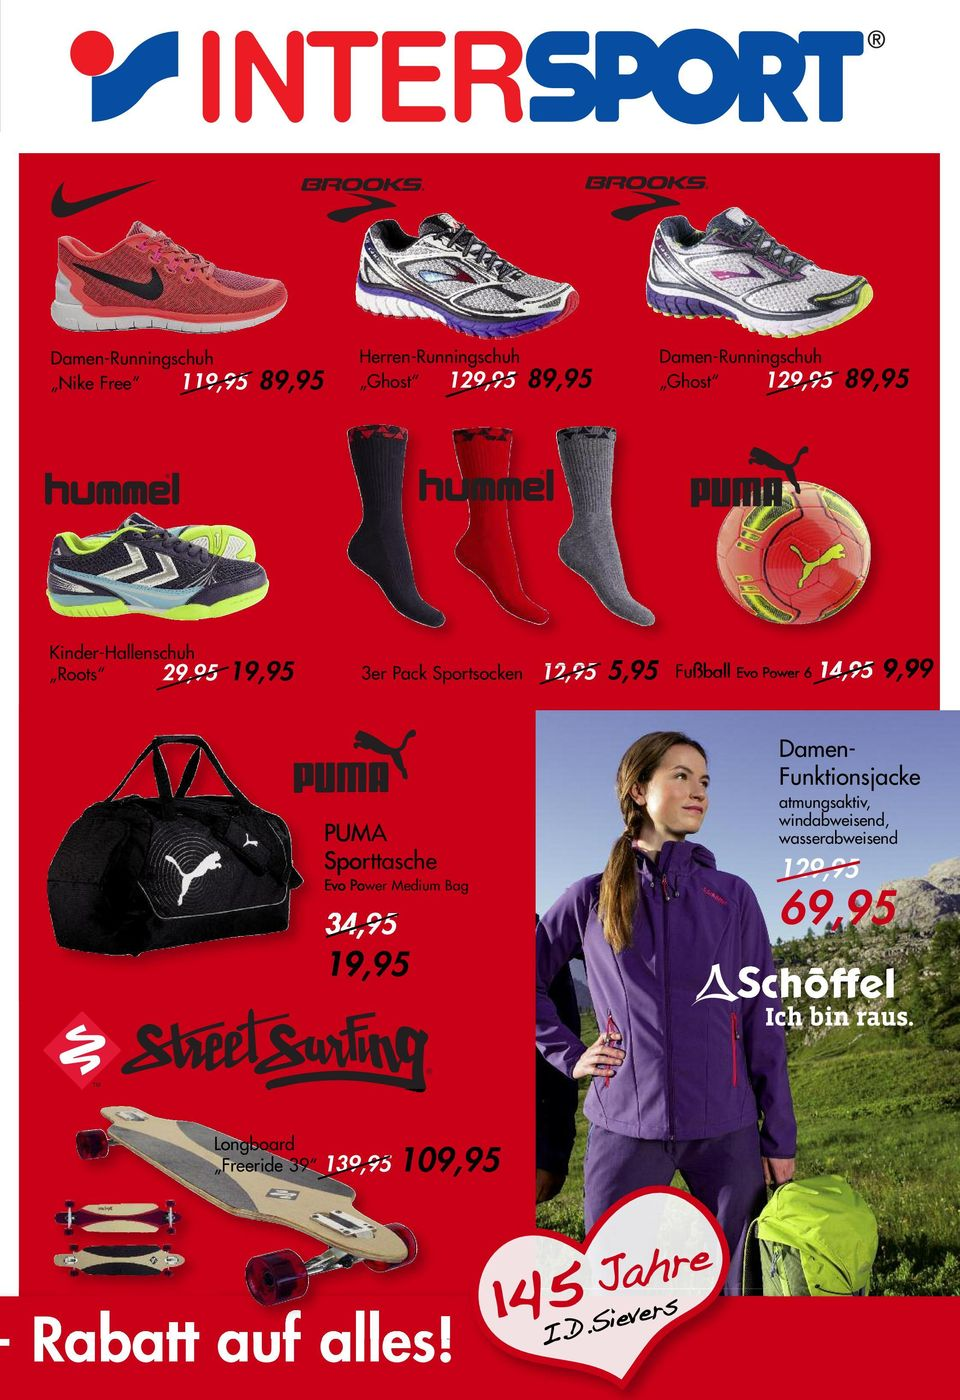 Damen-Runningschuh Ghost 129,95 89,95 Kinder-Hallenschuh Roots 29,95 19,95 3er Pack Sportsocken 12,95 5,95